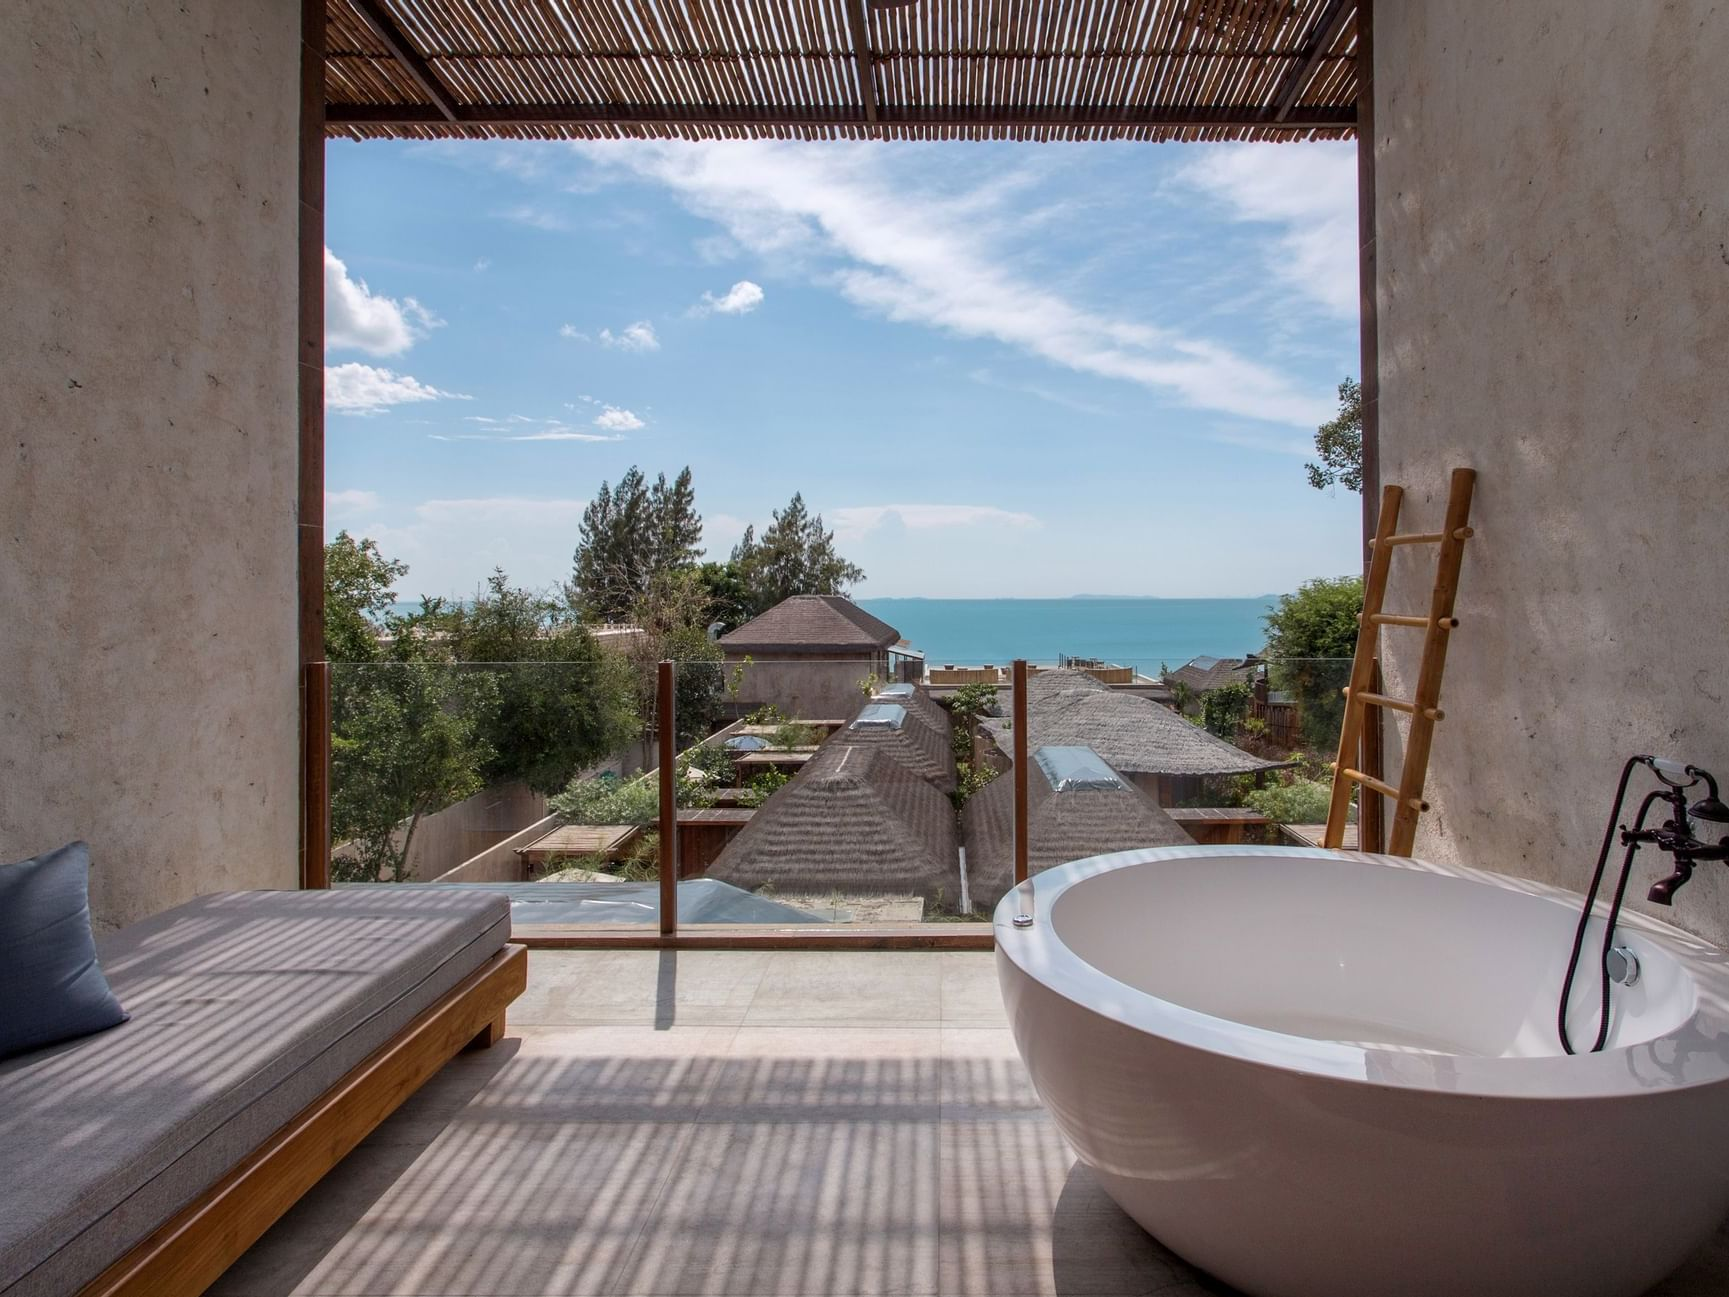 Deluxe Seaview room at U Hotels and Resorts